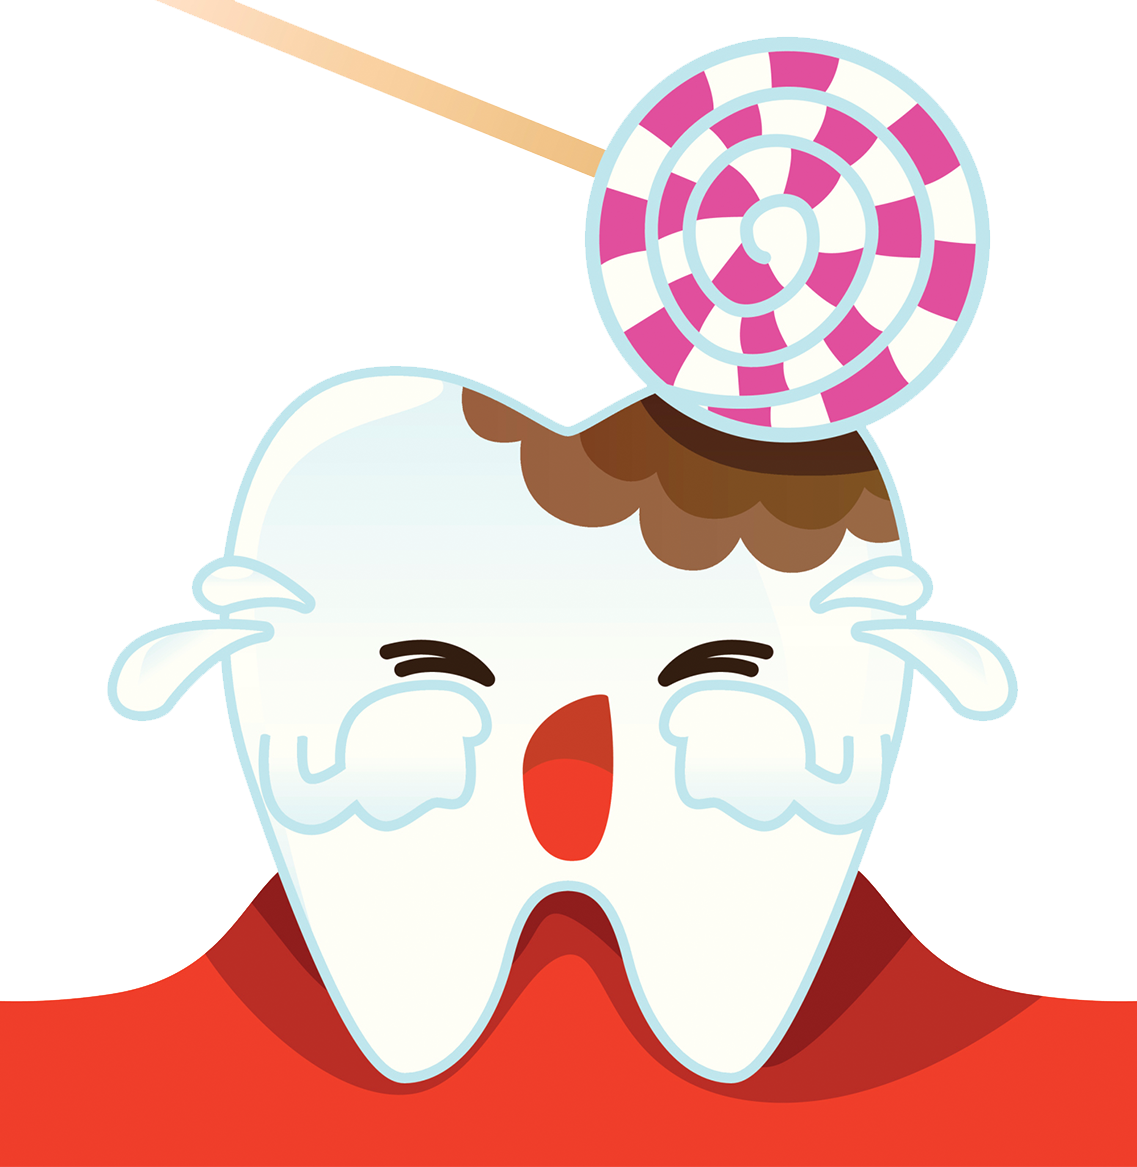 Tooth decay pathology dentistry. Hurt clipart tootache